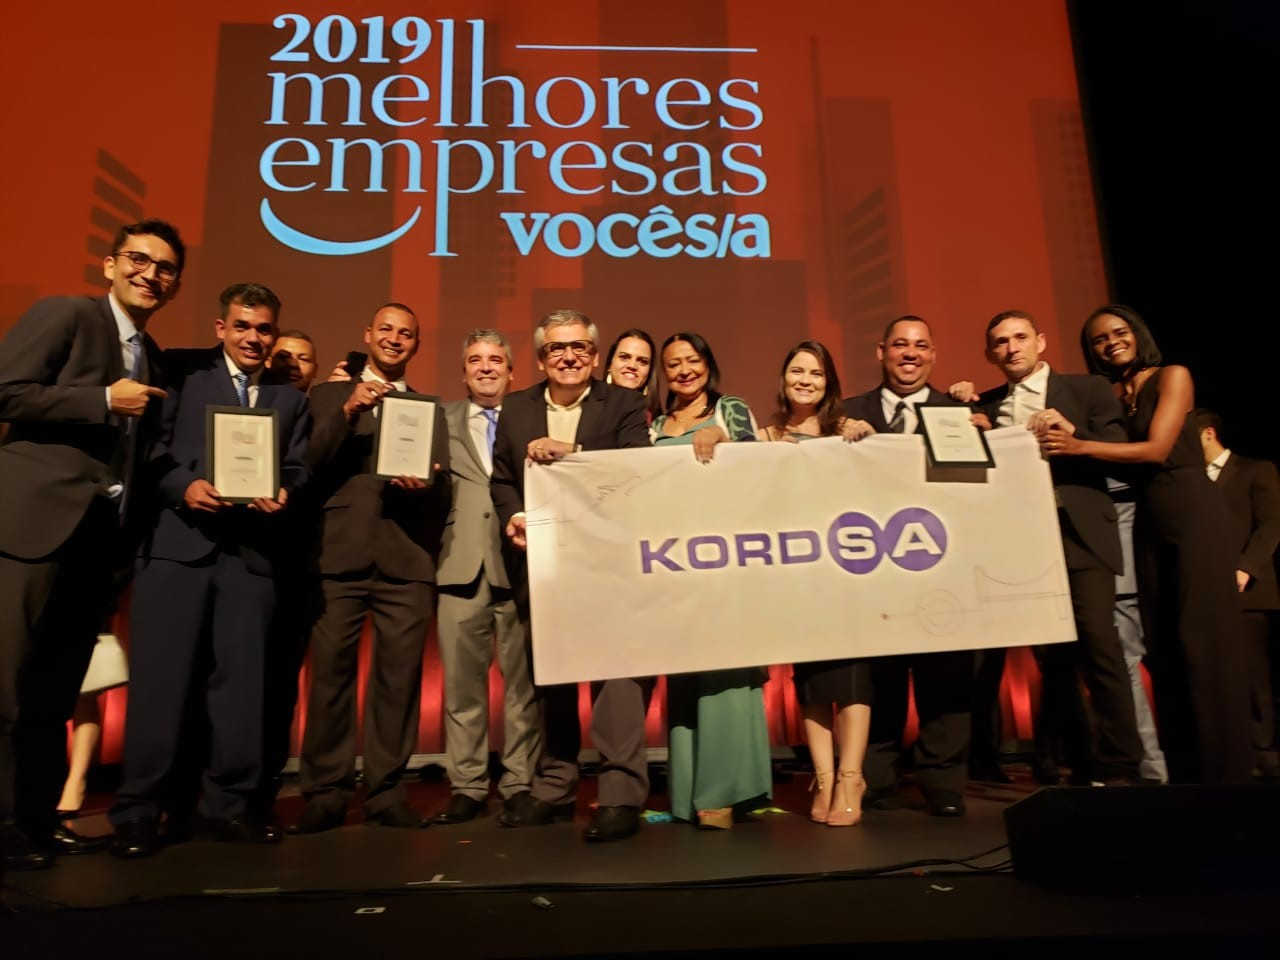 Kordsa honored as the Company of the Year in Brazil